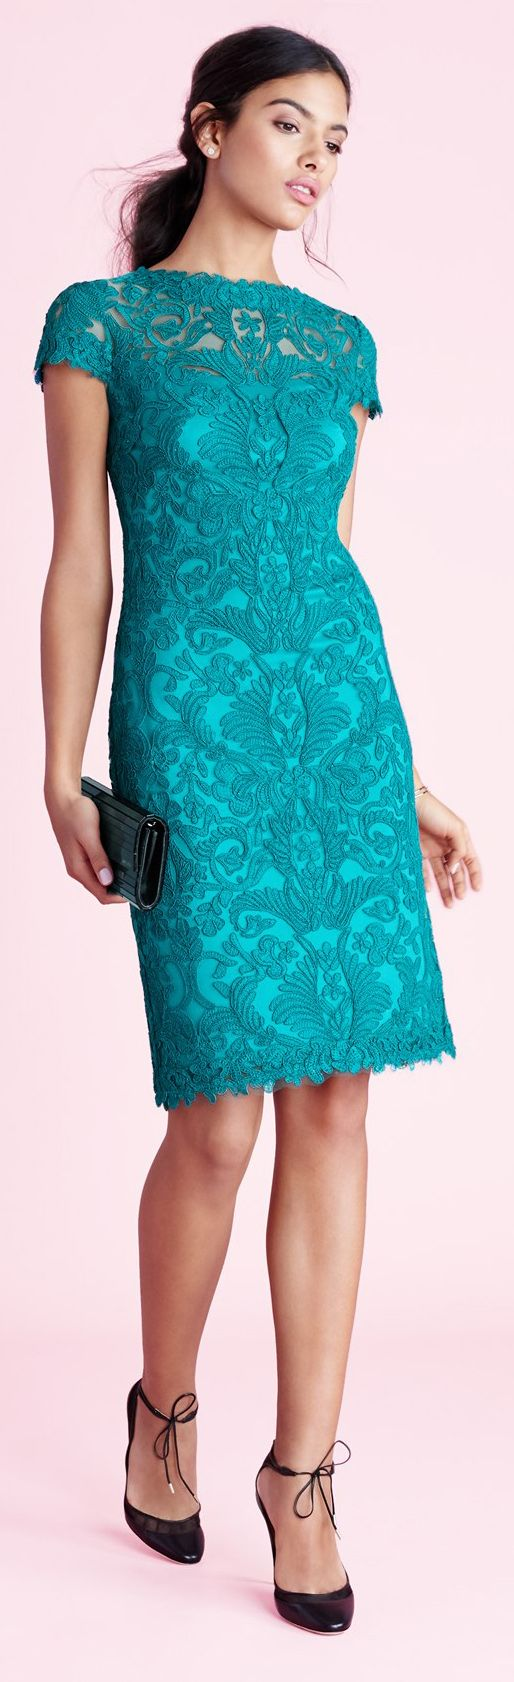 25 best ideas about turquoise lace dresses on pinterest